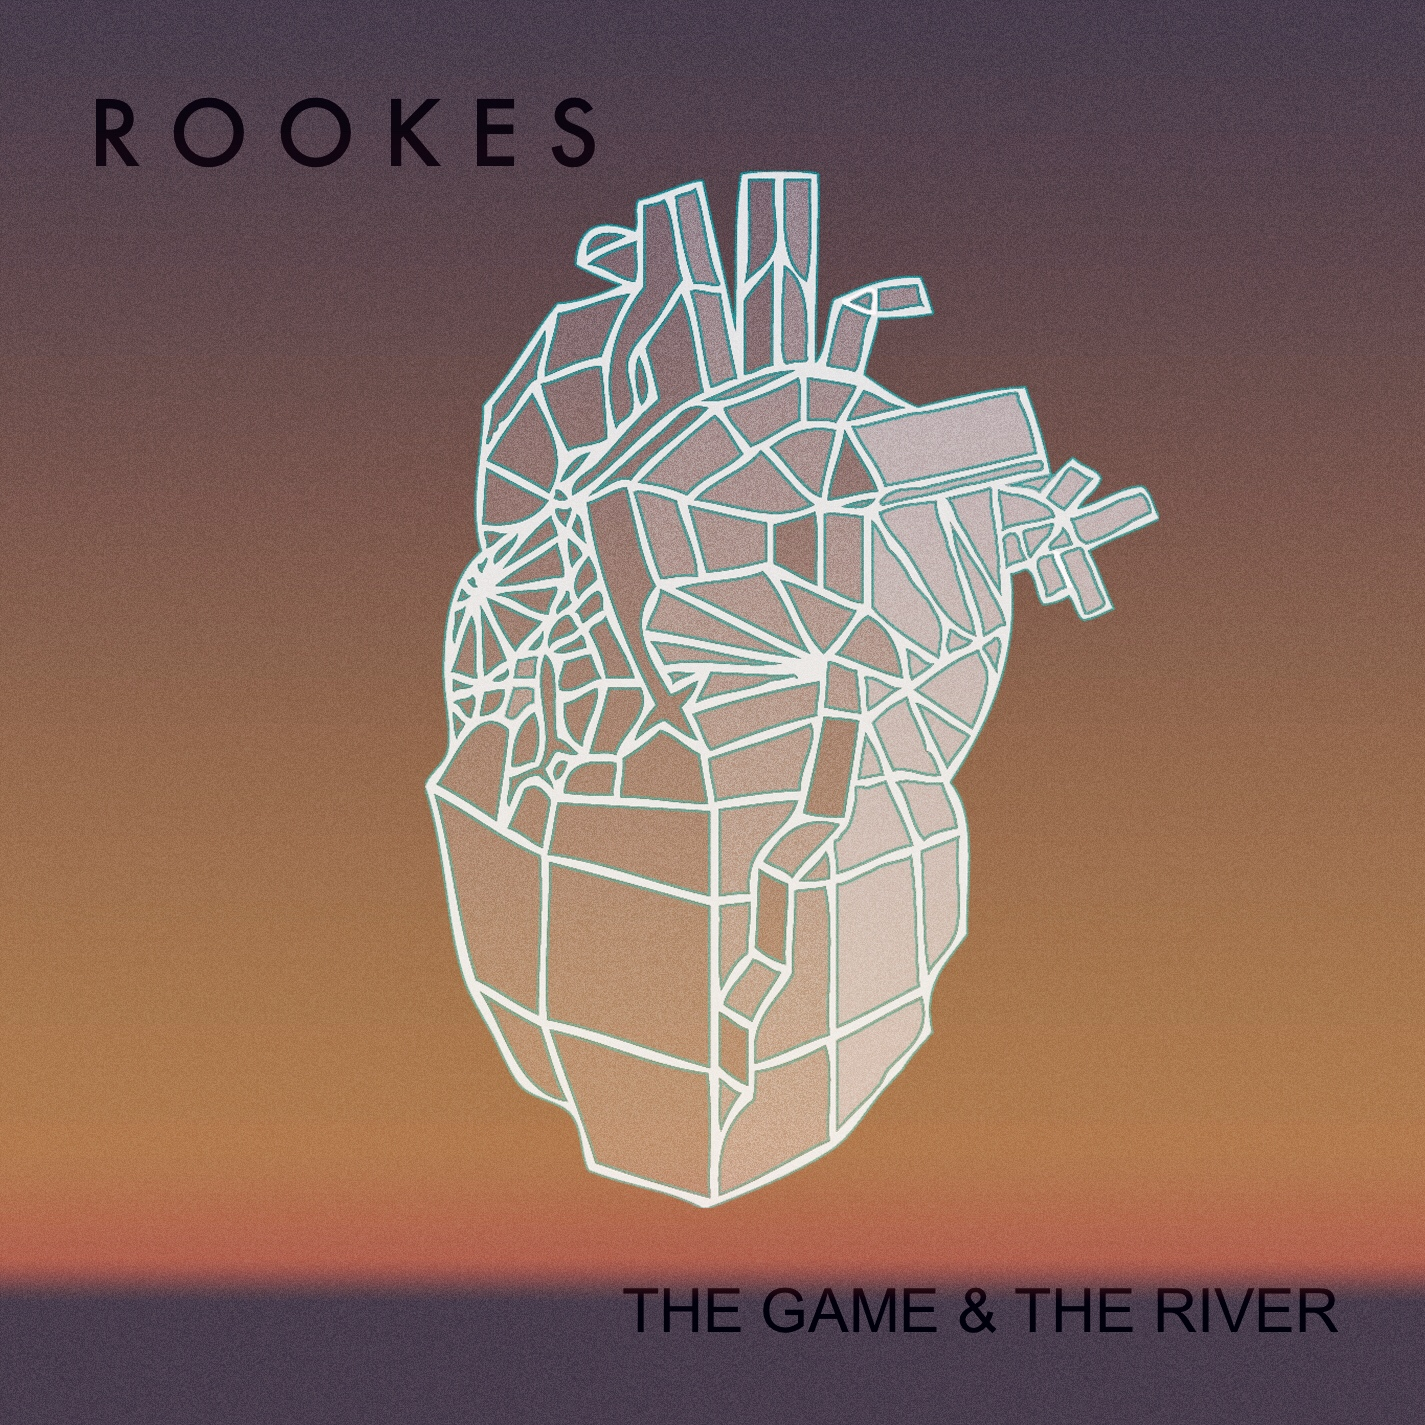 The Game & The River EP - ROOKES